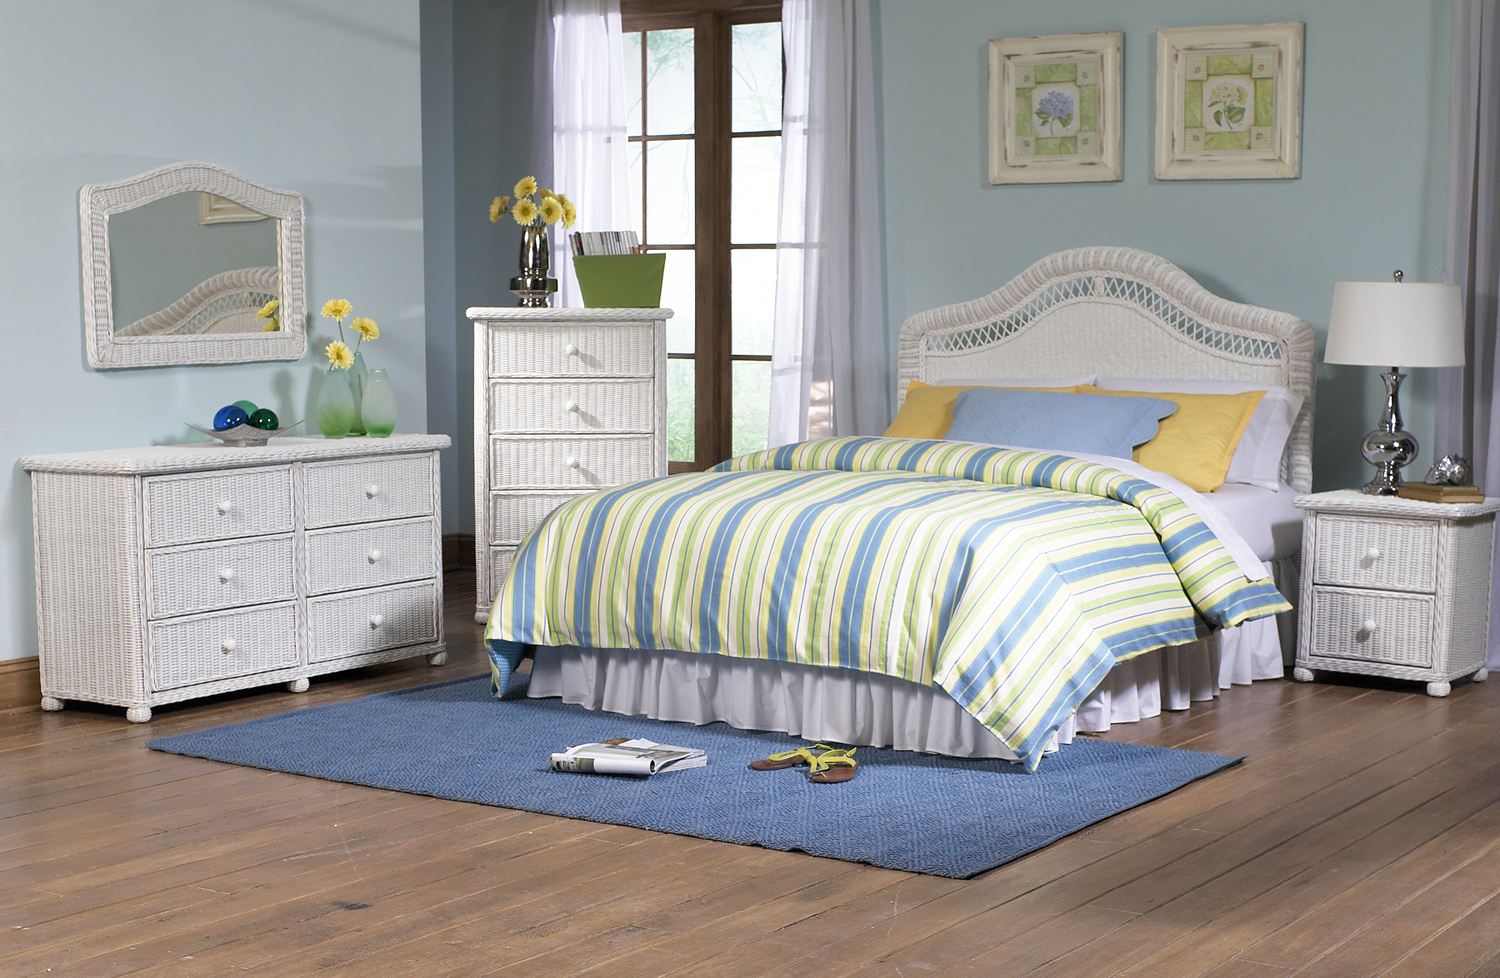 Wicker bedroom set White wicker bedroom furniture